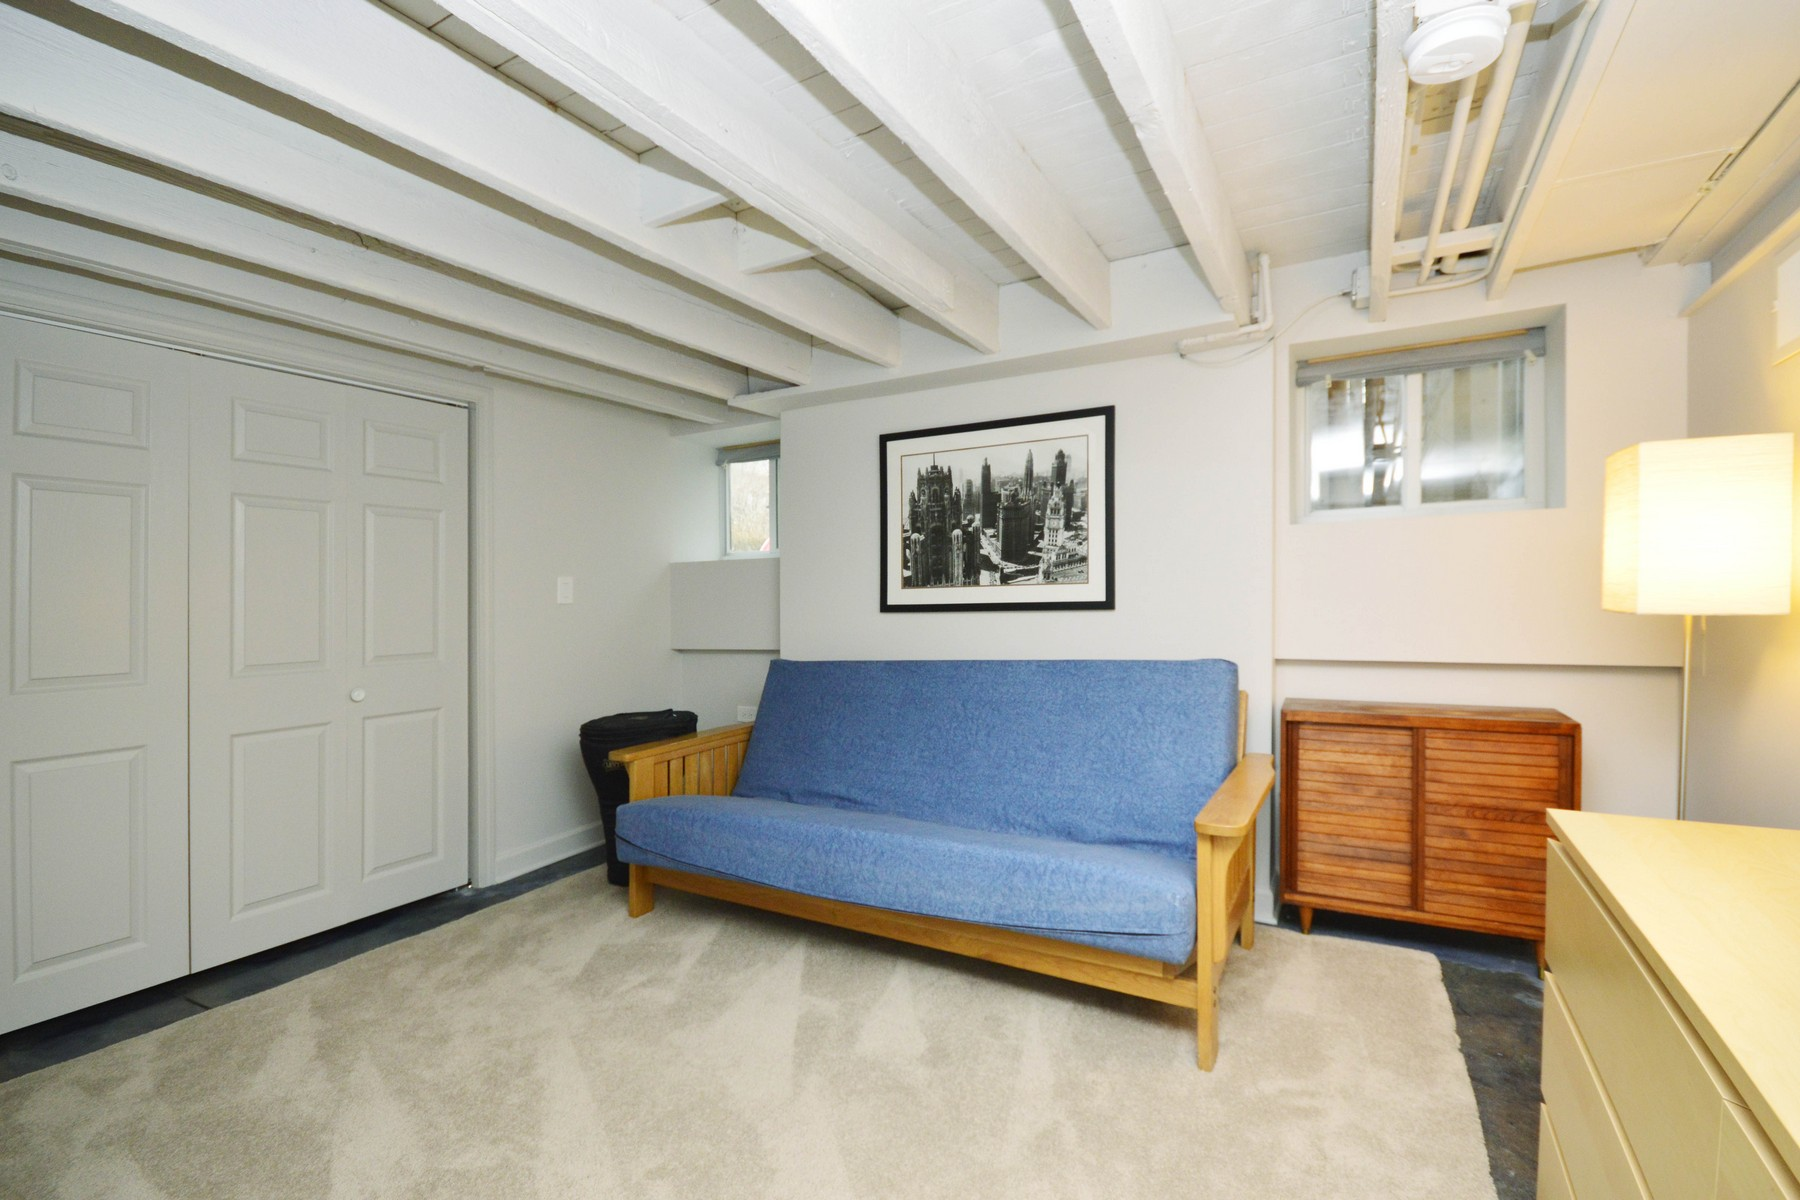 Additional photo for property listing at Stunning Green Renovation 716 Clinton Place Evanston, Illinois 60201 United States